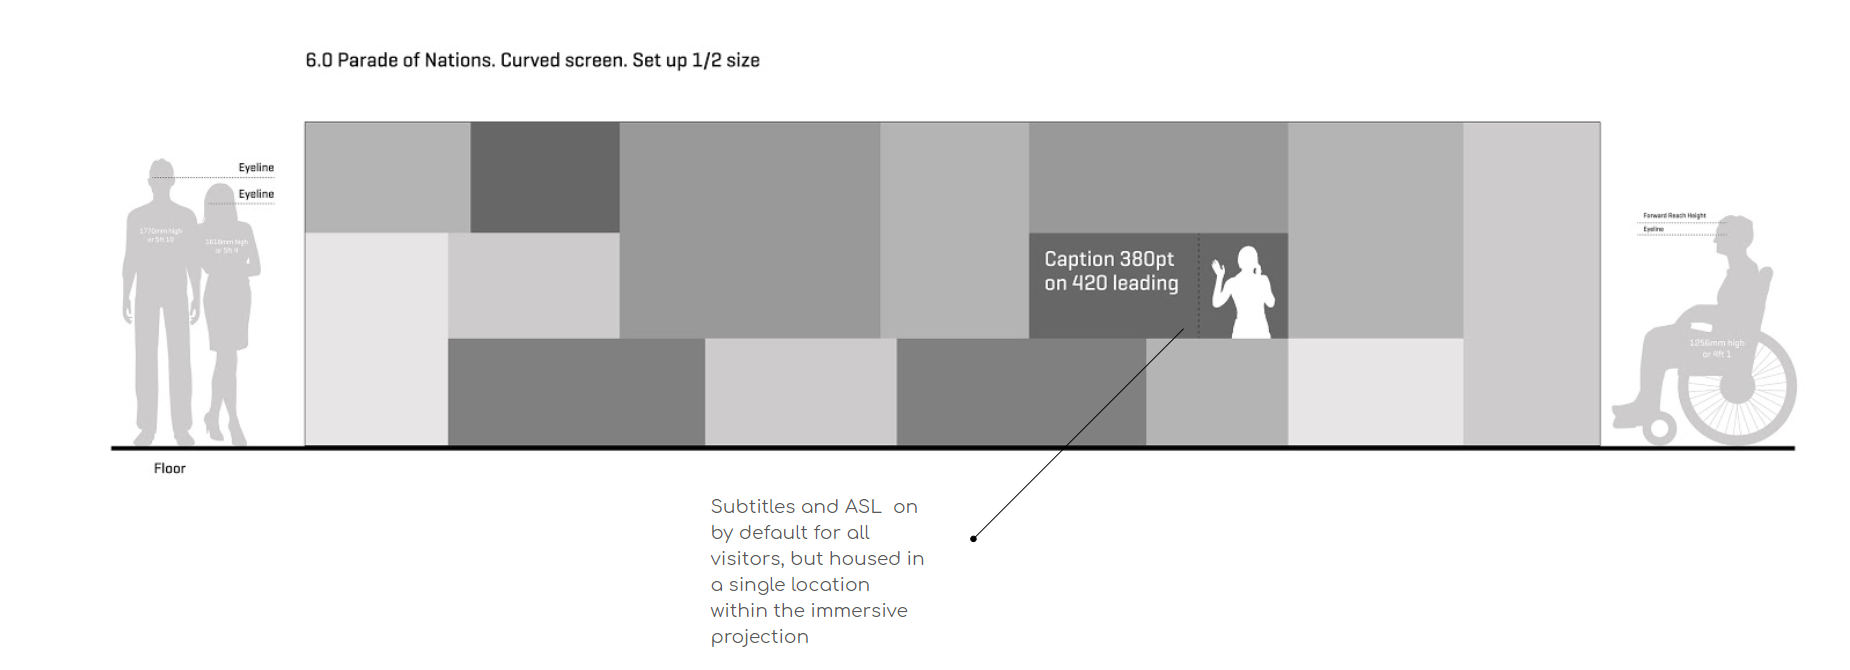 Alt image text: A technical drawing demonstrating the positioning of ASL and captions within a large-scale projected composition, in relation to a wheelchair user and two standing people.